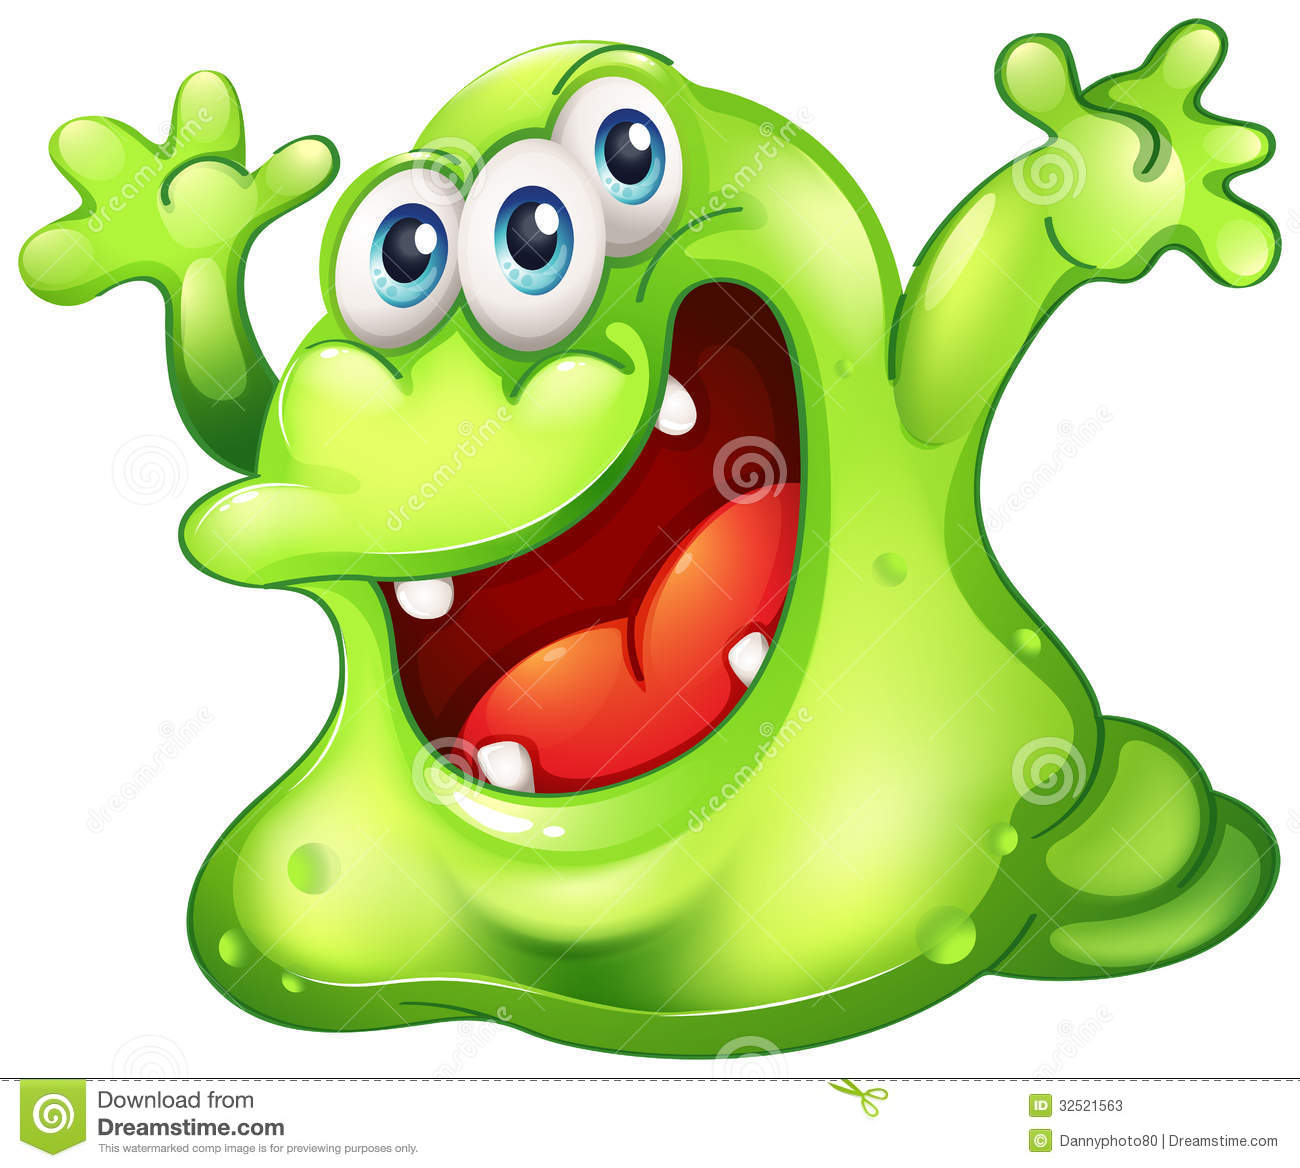 Download A green slime monster stock vector. Illustration of mouth - 32521563